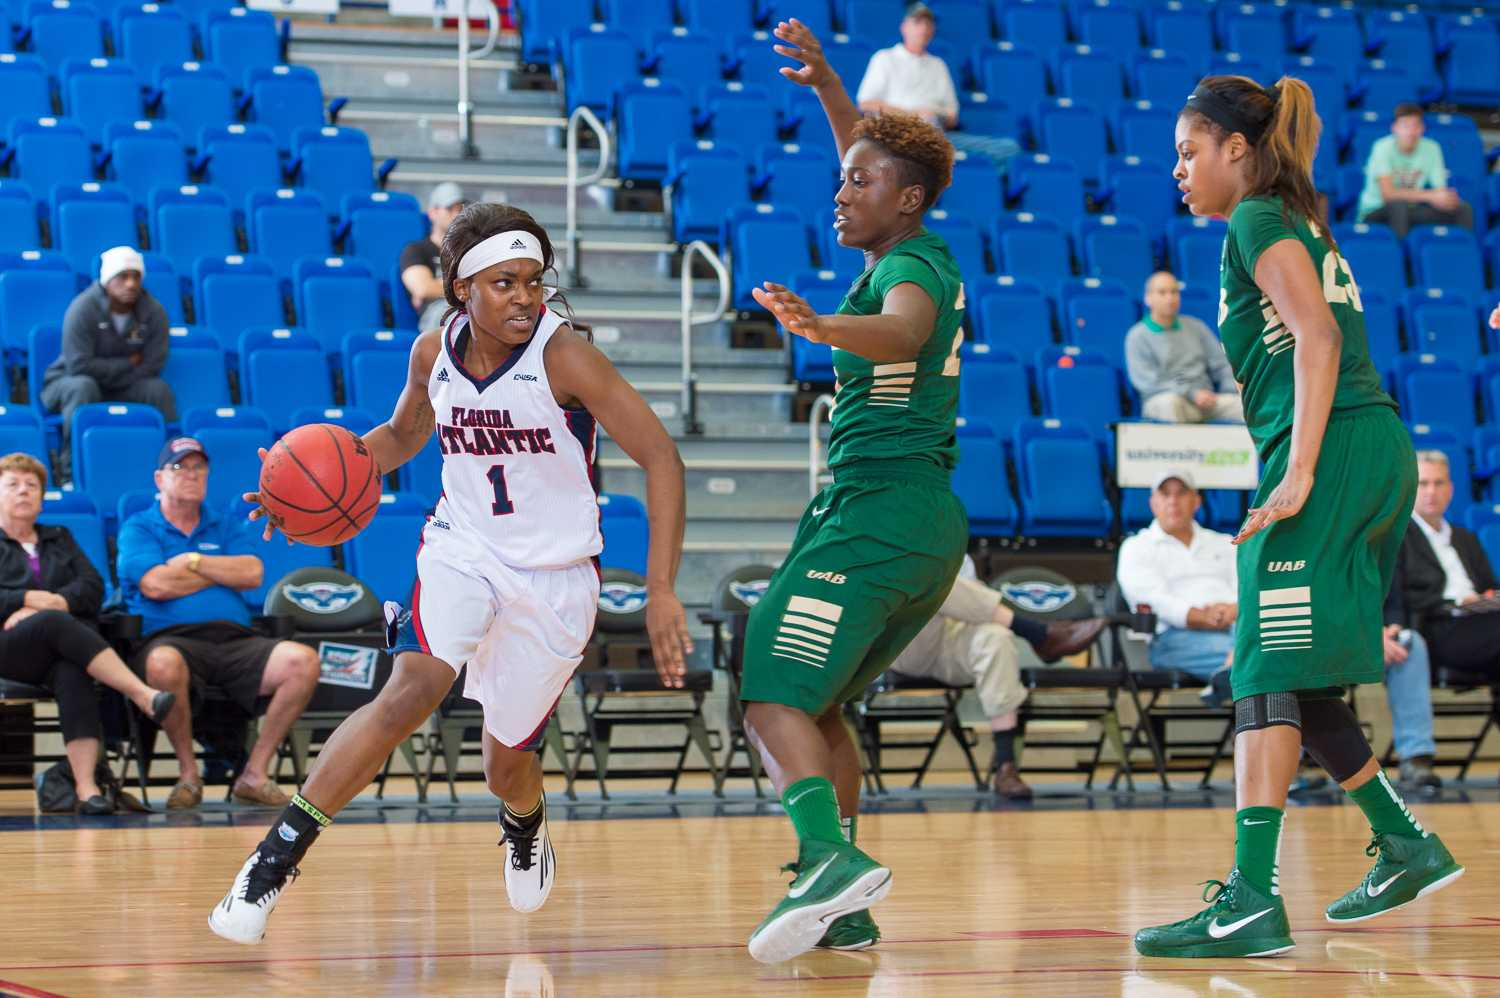 FAU guard, Aaliyah Dotson (1) looks for room under the basket while Chelsee Black (21) attempts to block her.